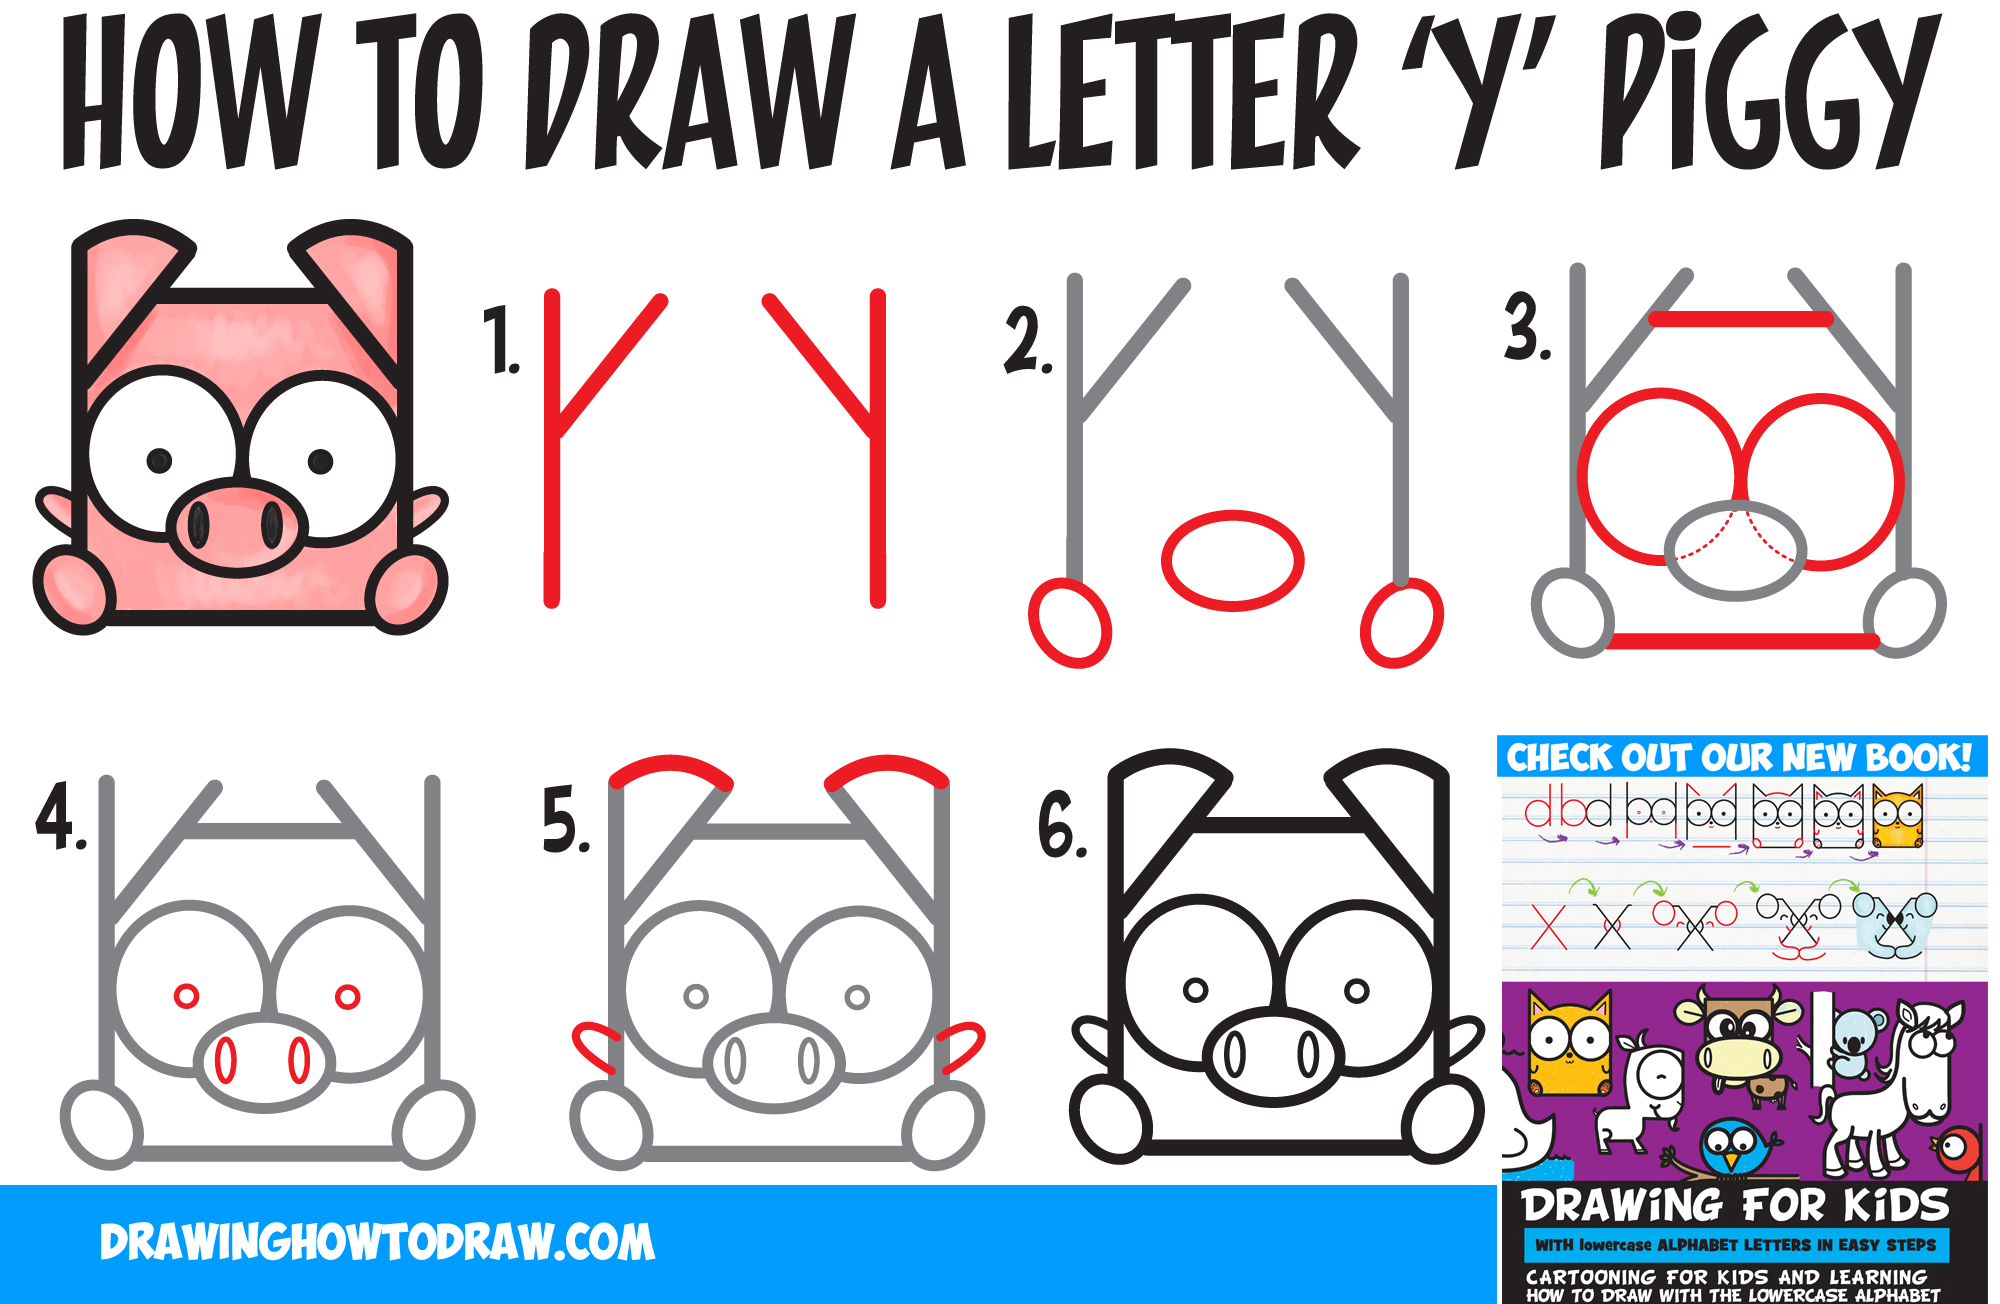 Uncategorized Easy Draw Pig how to draw a cute kawaii cartoon pig from letter y shapes easy step by drawing tutorial for kids